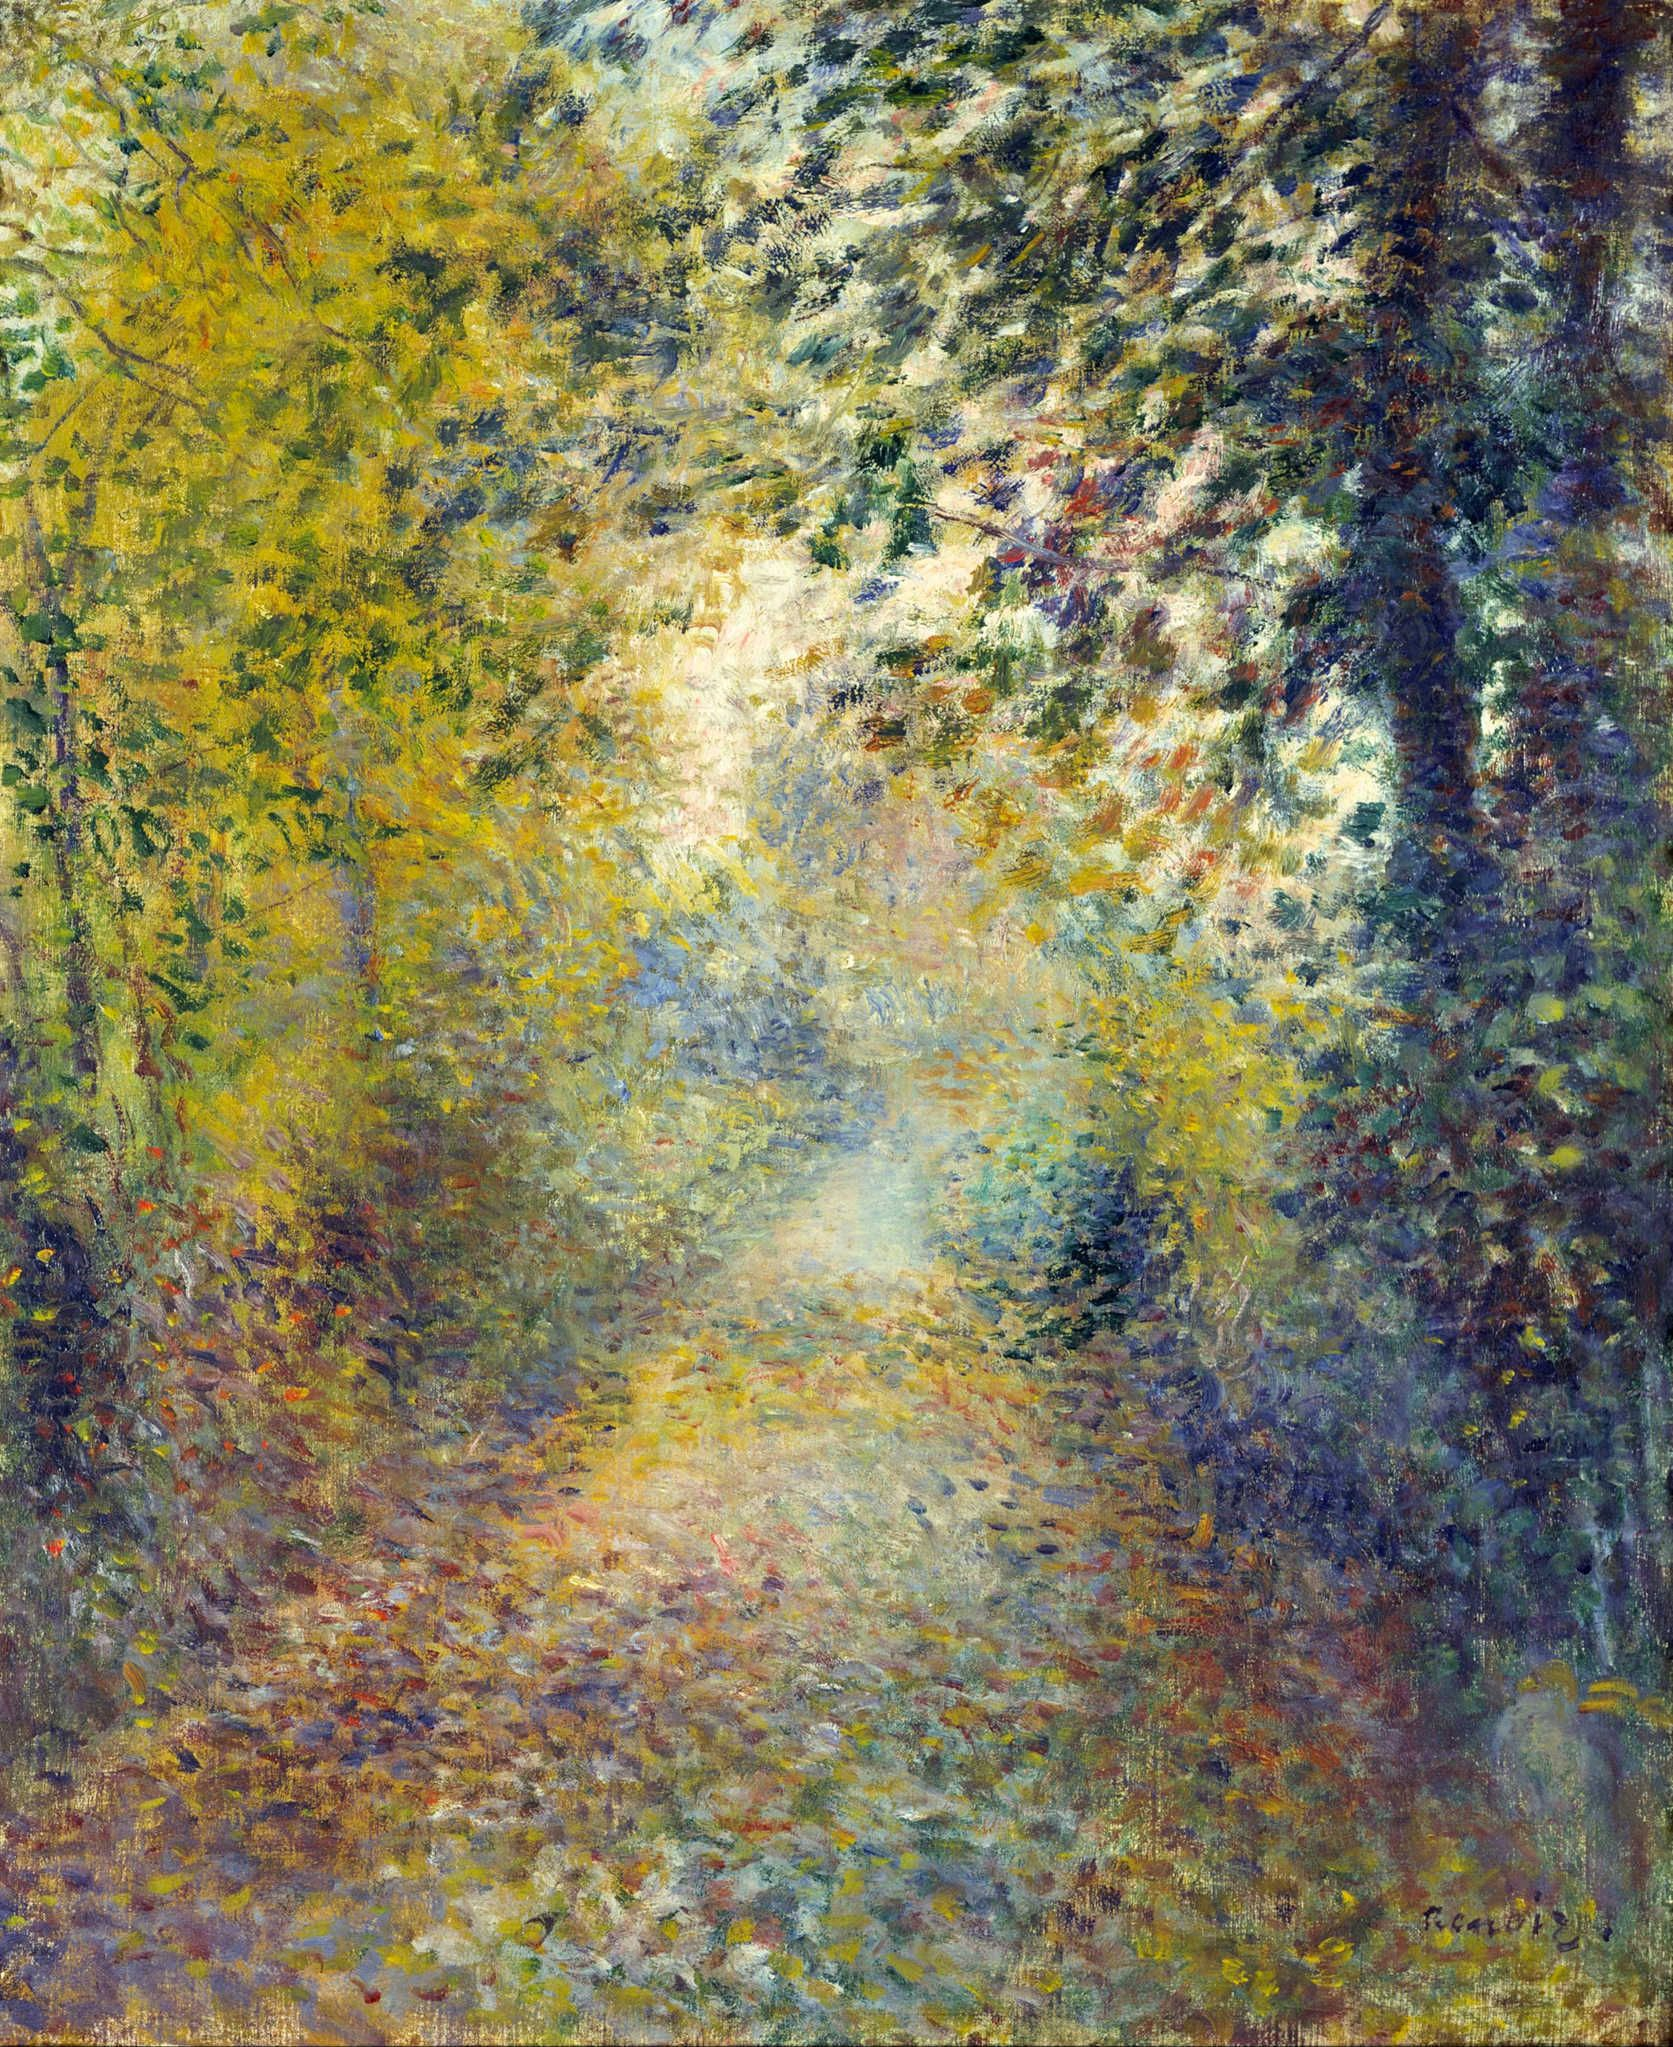 Liste Des Artiste Peintre Francais pierre-auguste renoir: in the woods, 1880. pinterest